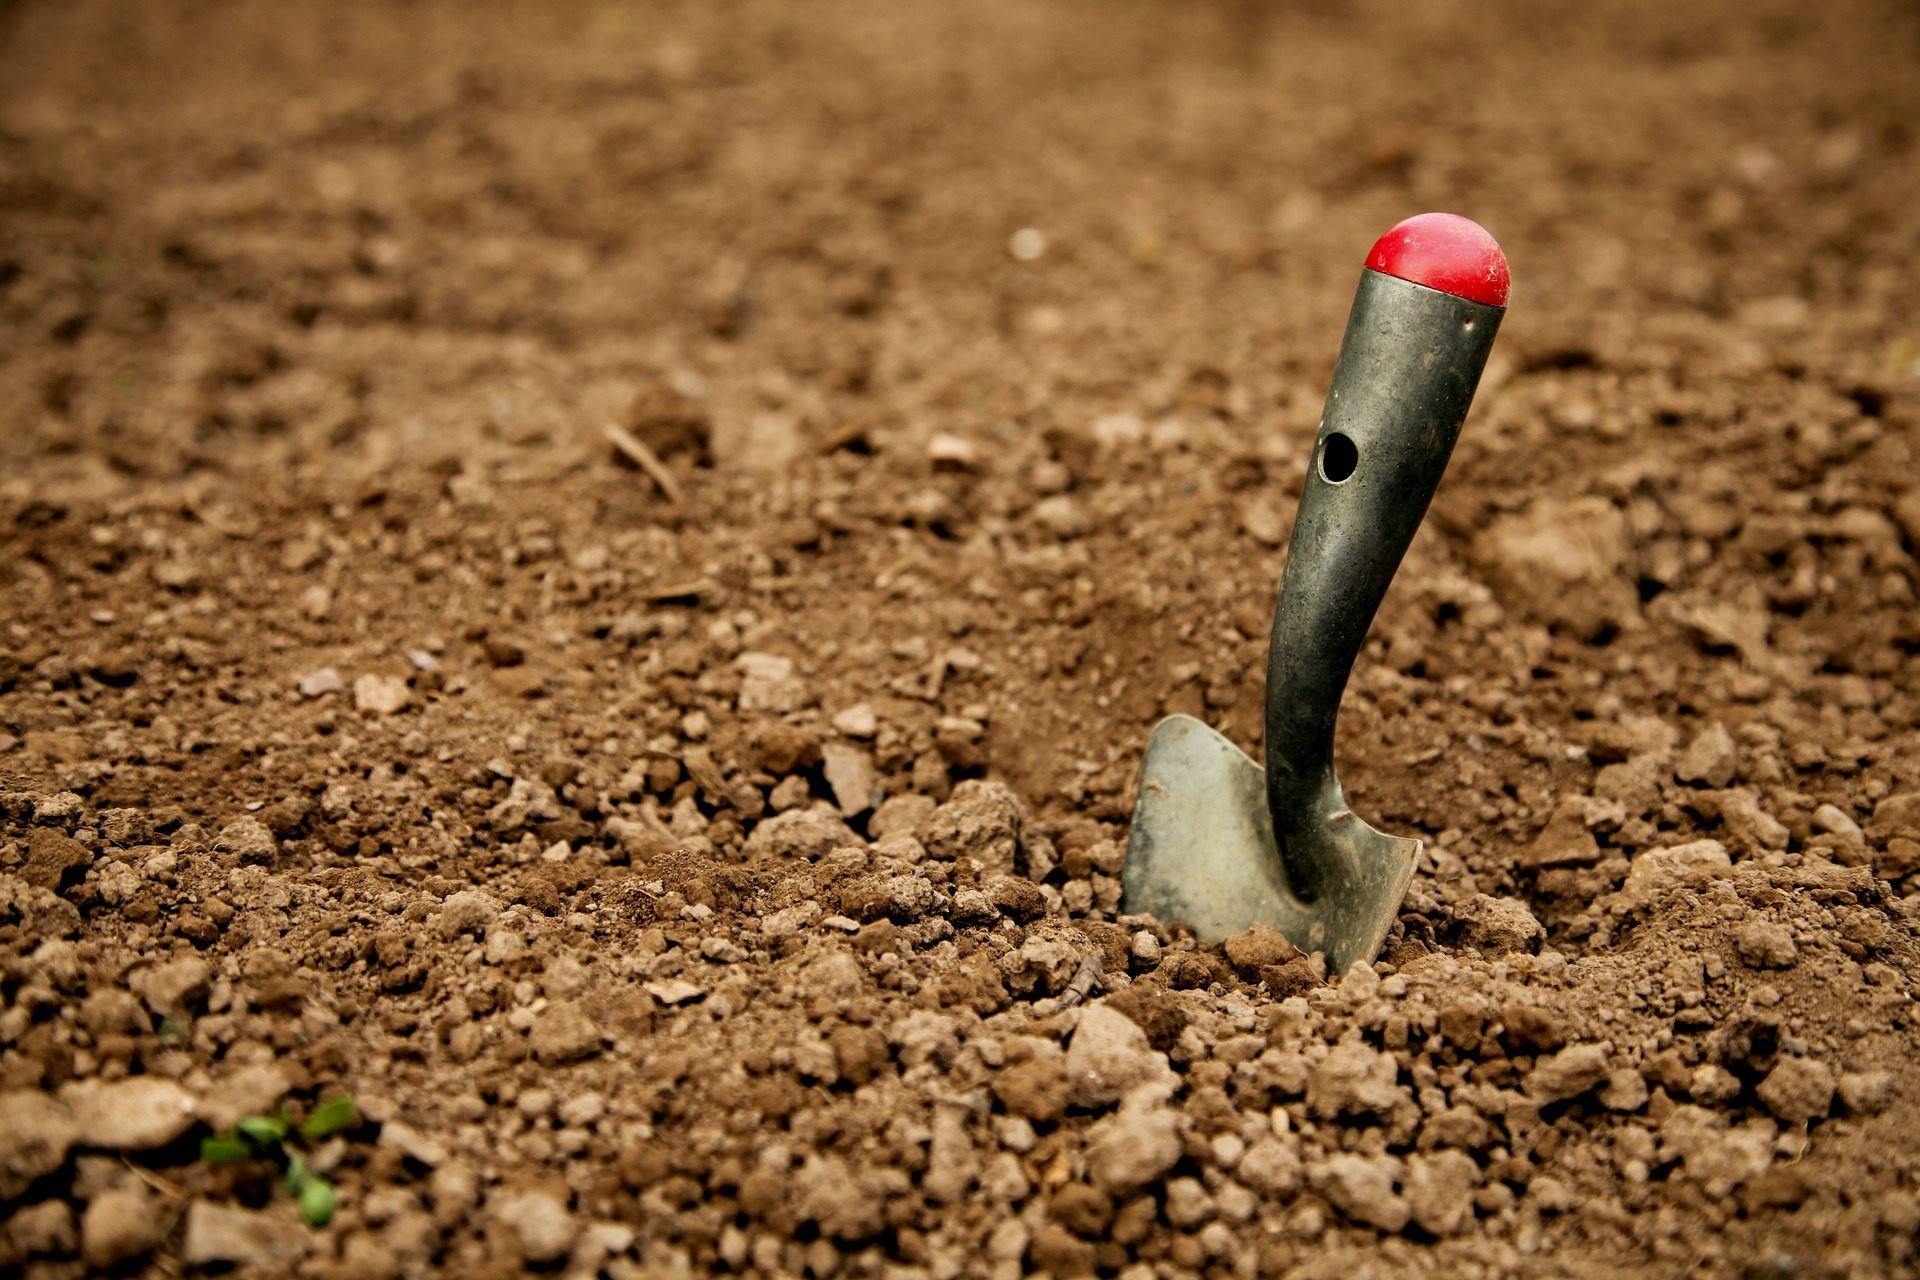 Image of shovel stuck in soil